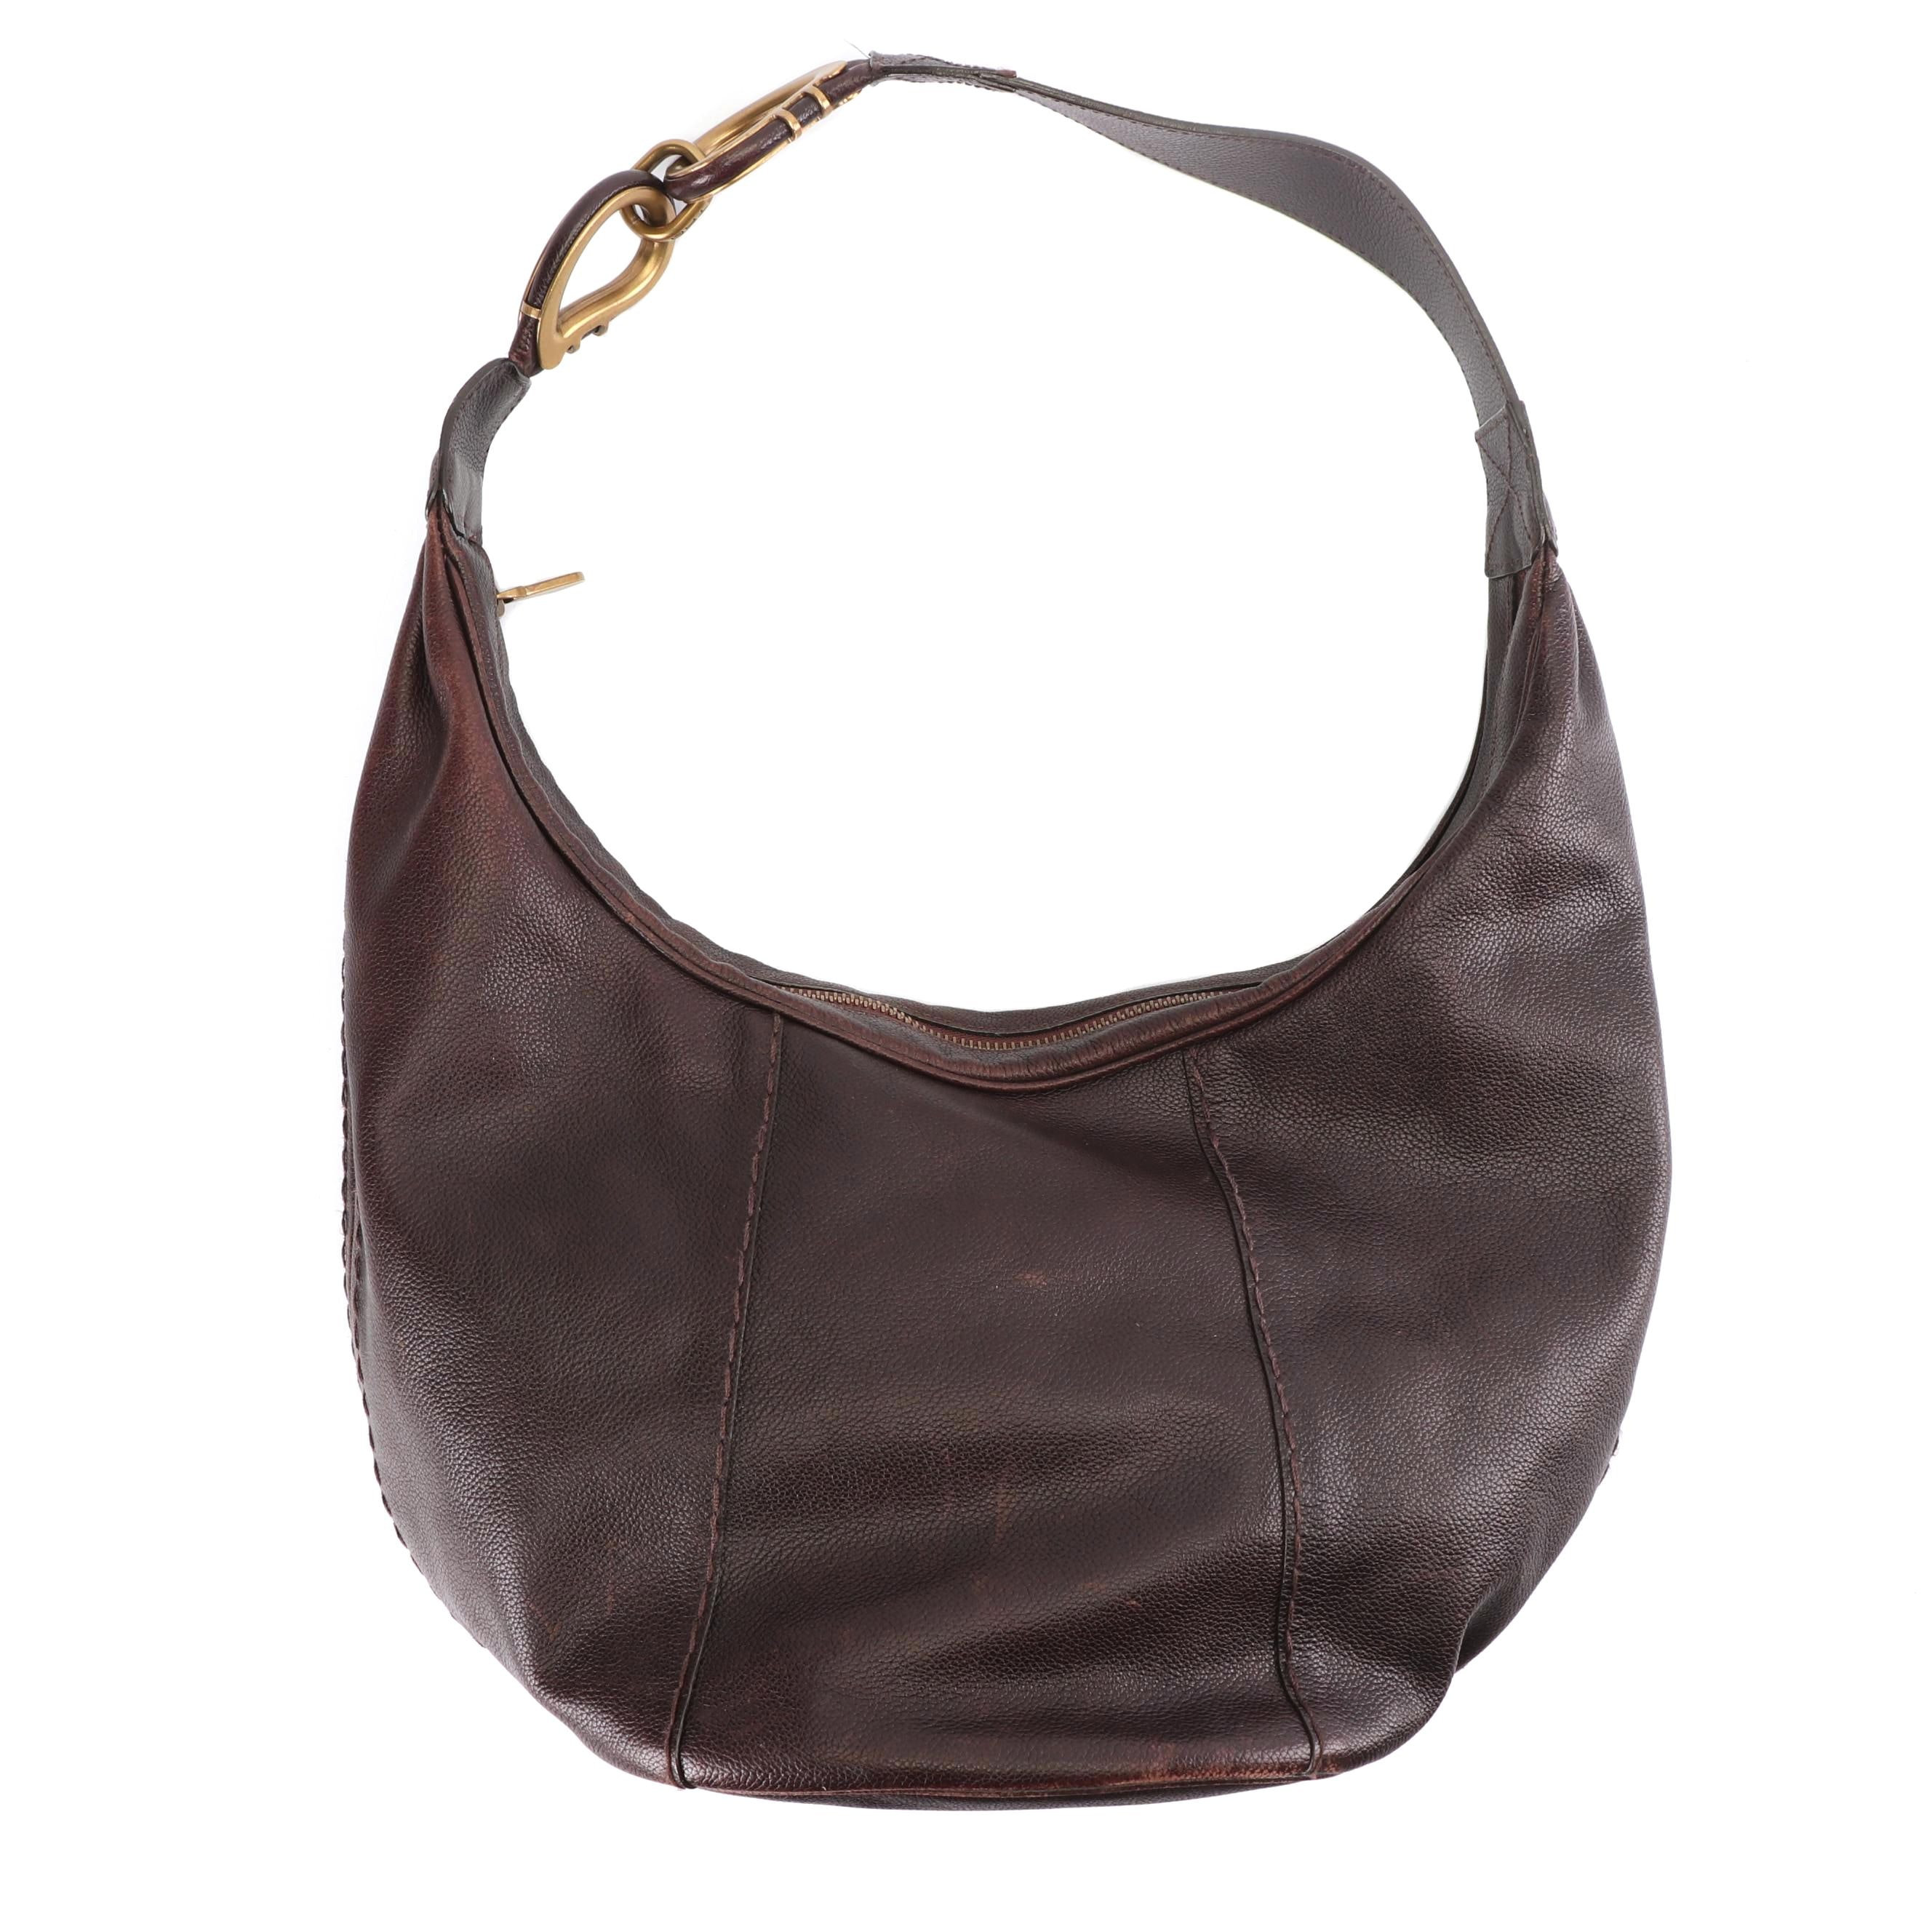 Etro Milano Brown Leather Hobo Bag, Made in Italy